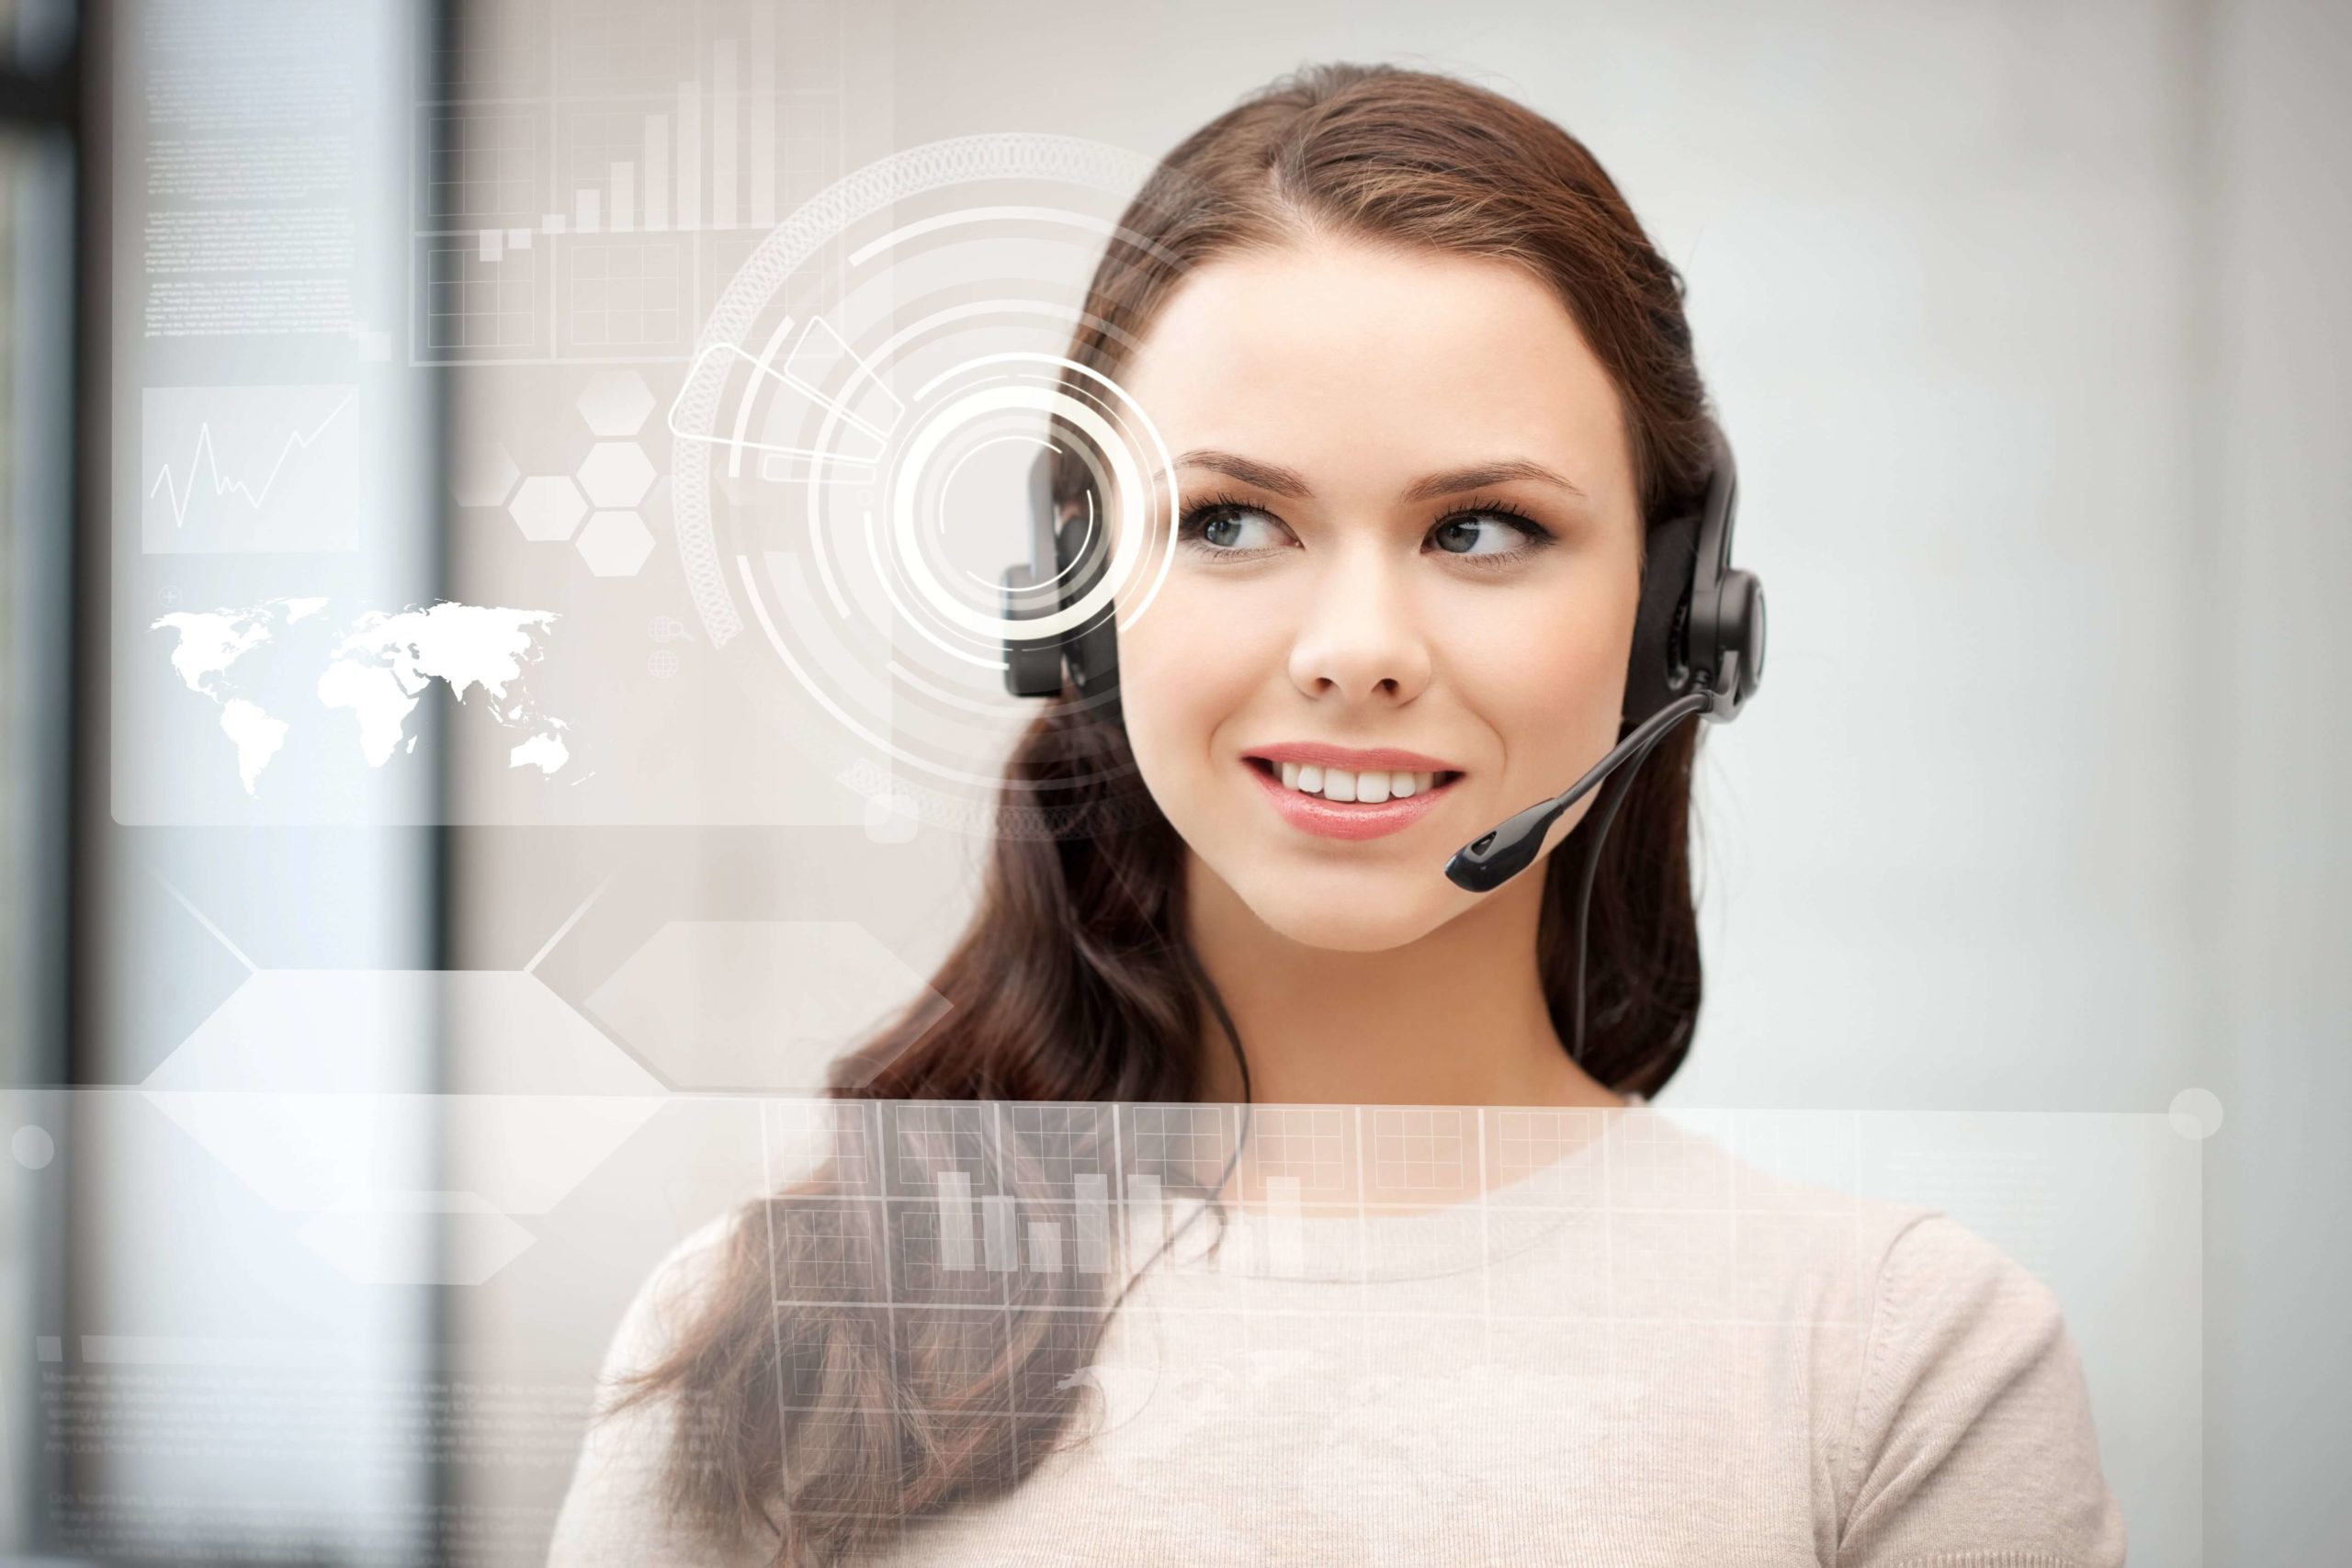 Contact Center Agent Automation